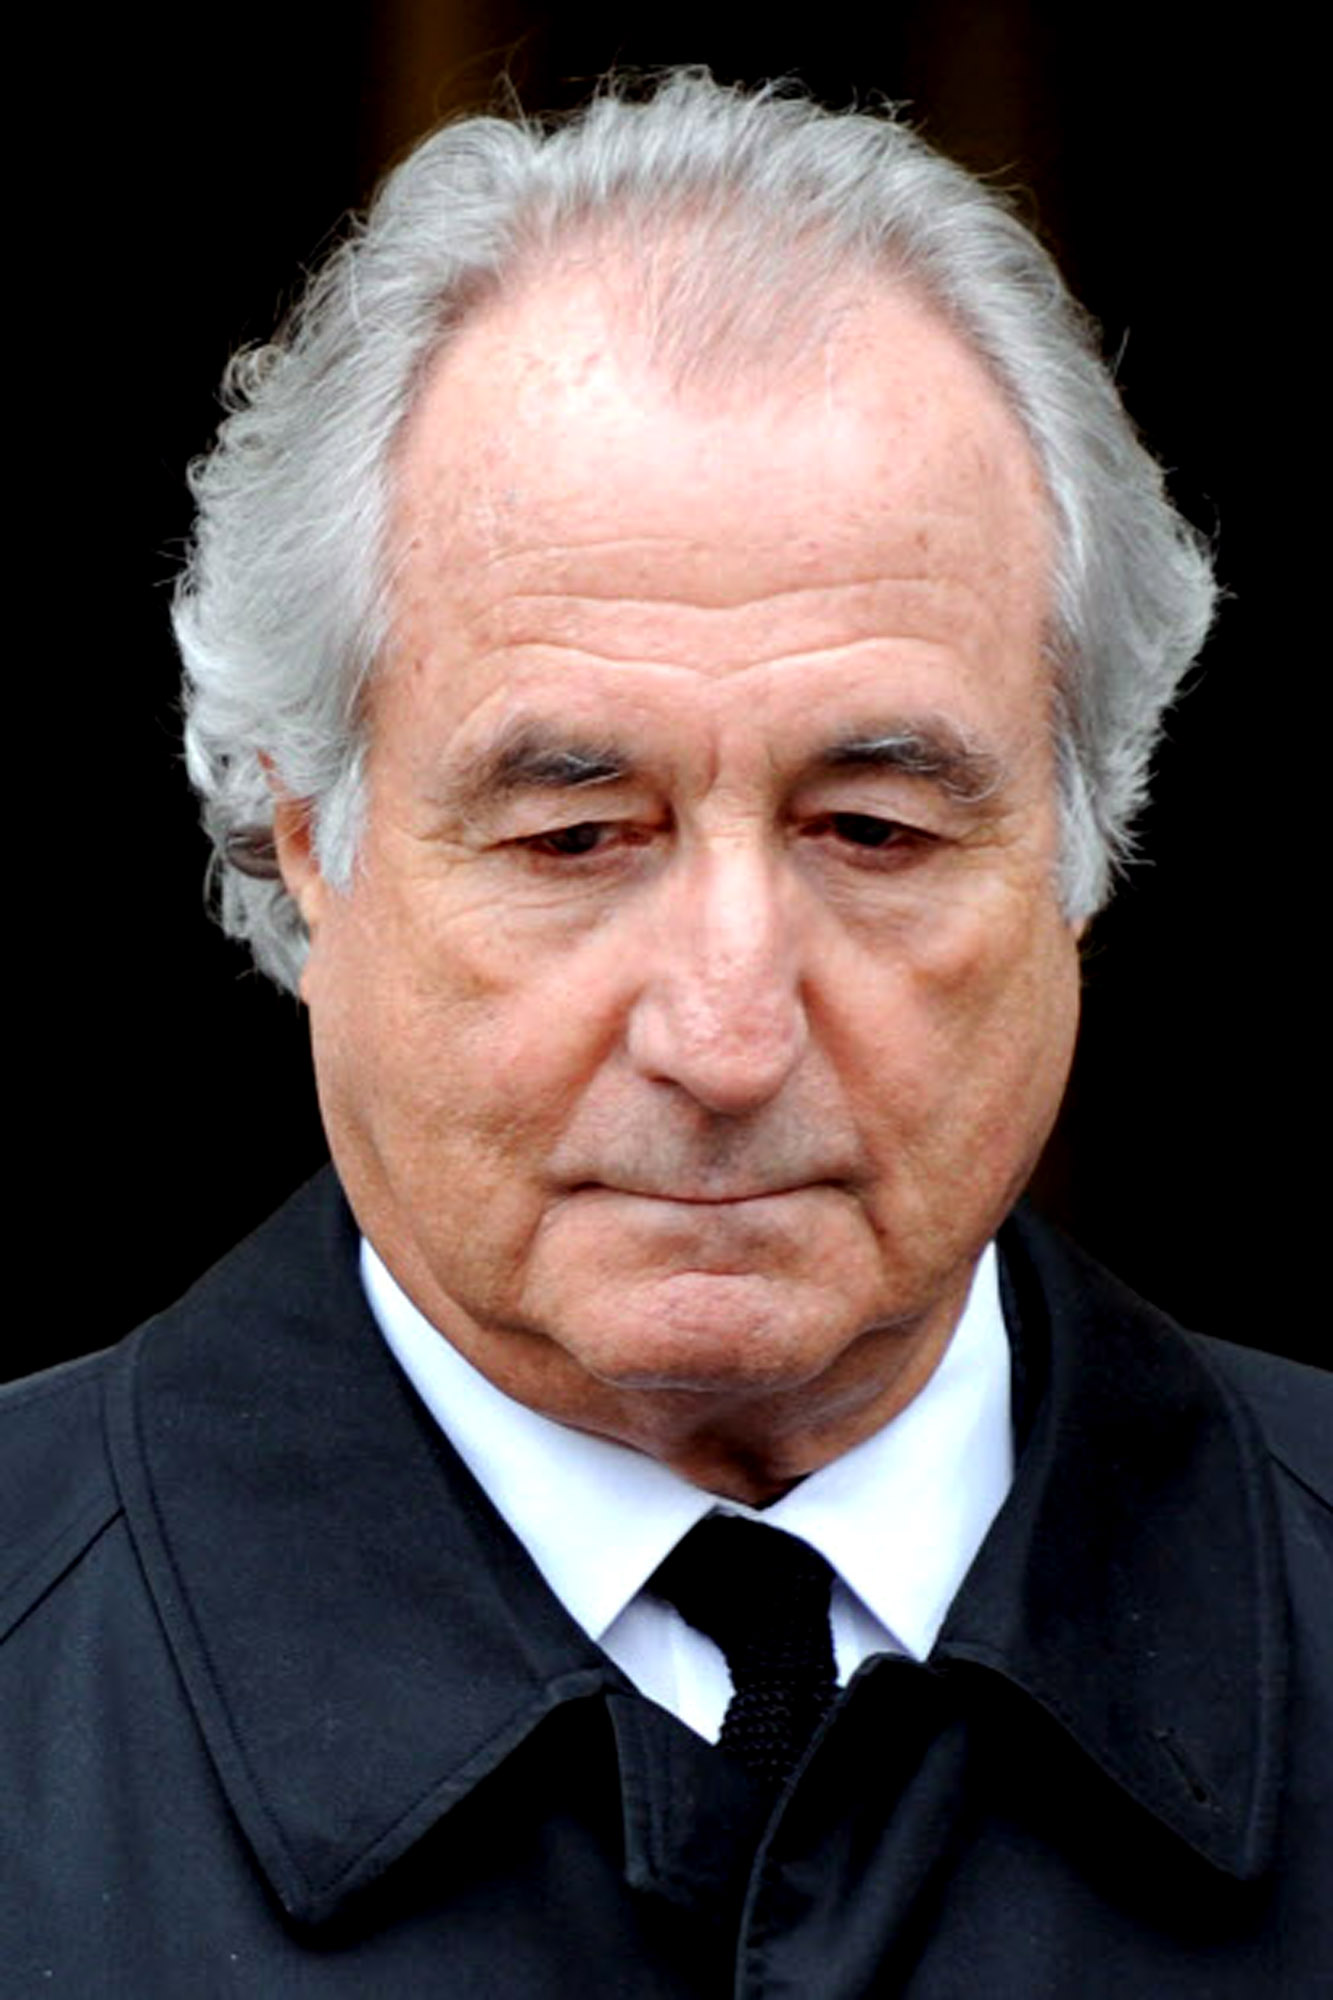 bernie madoff With drew gregory, bruce altman, anthony arkin, david aaron baker the rise and fall of bernie madoff, whose ponzi scheme bilked $65 billion from unsuspecting victims the largest fraud in us history.